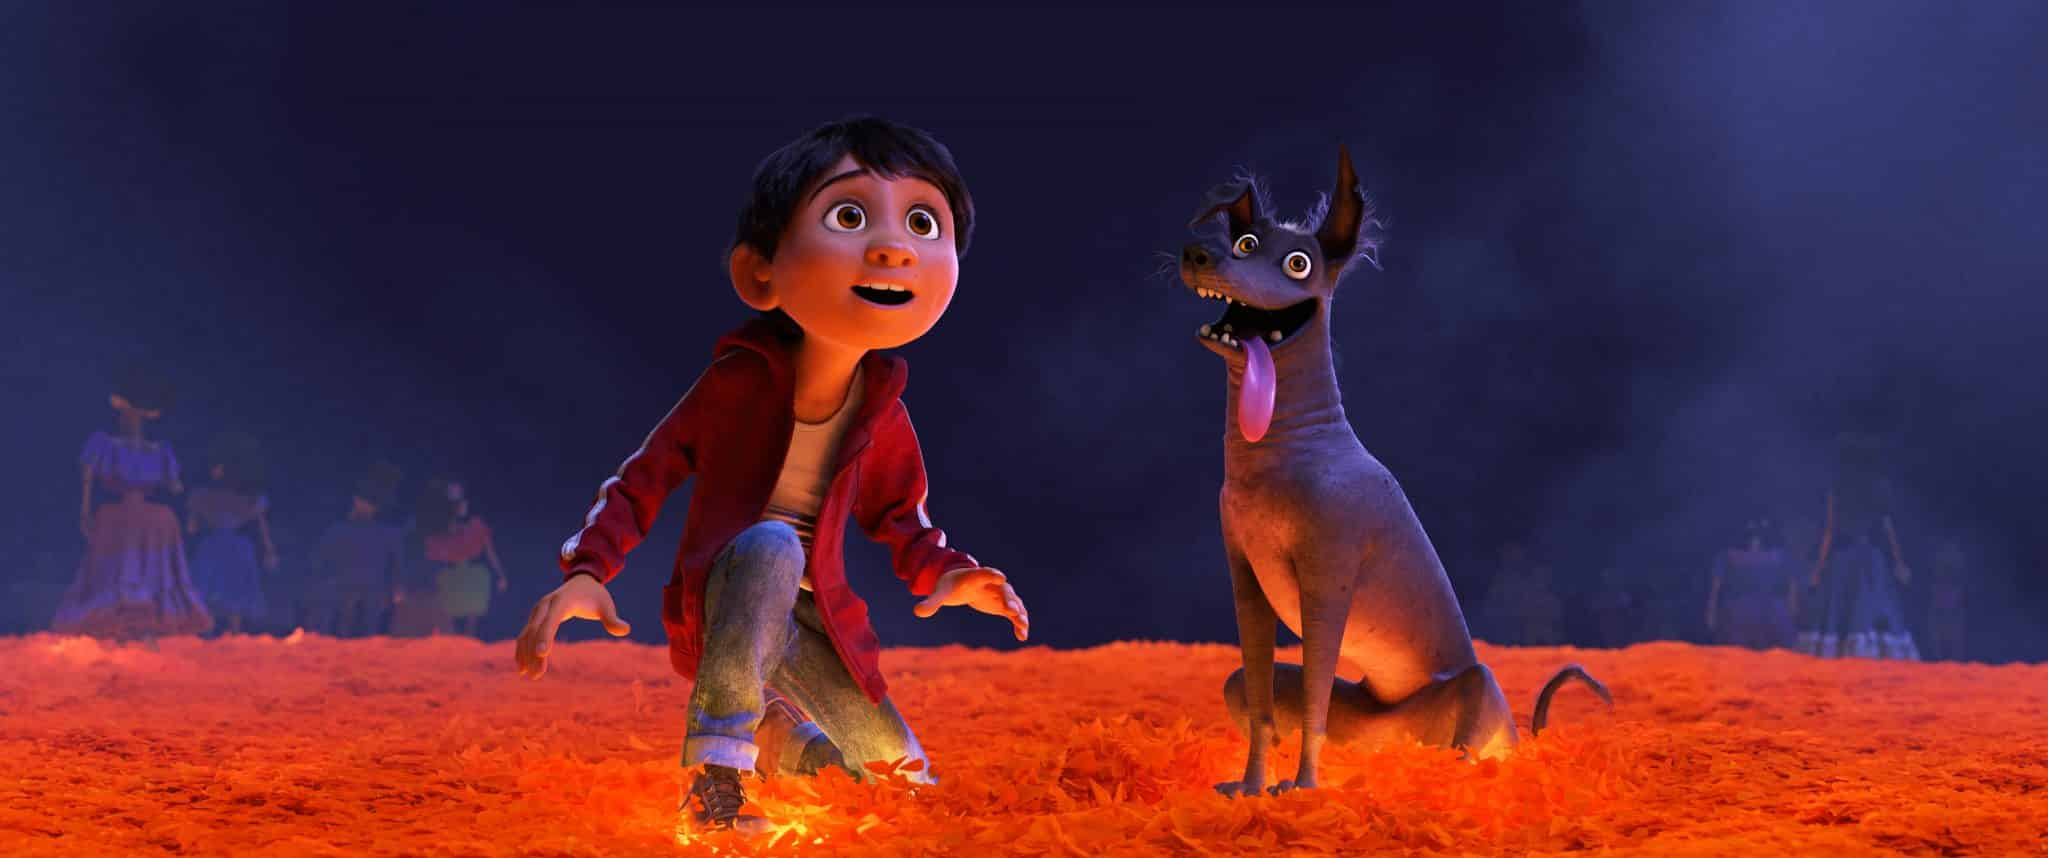 New Teaser Trailer for Disney Pixar's COCO! #Coco